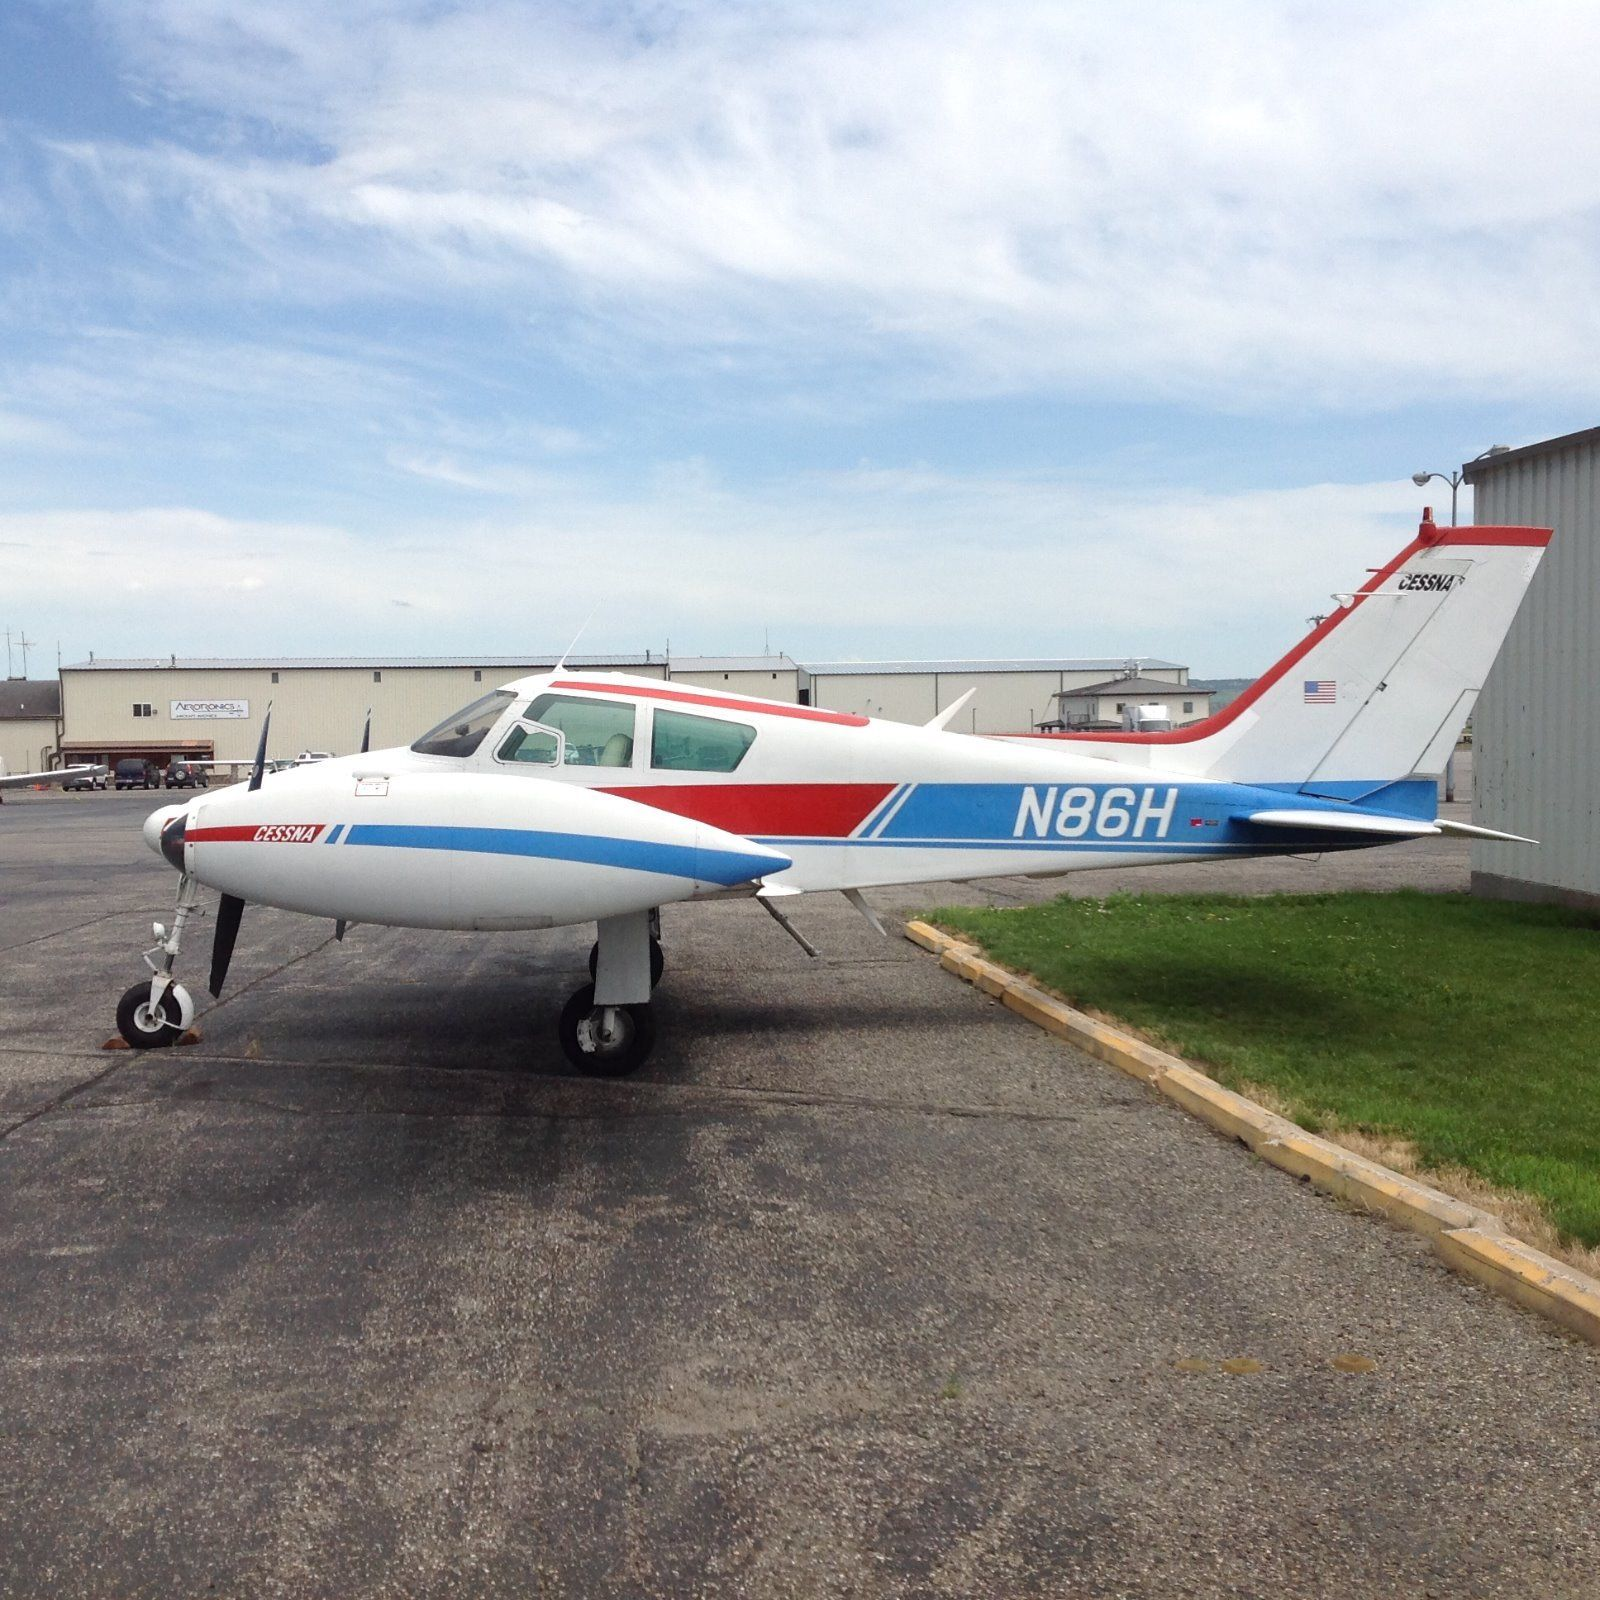 loaded 1960 Cessna 310D Multi Engine aircraft for sale